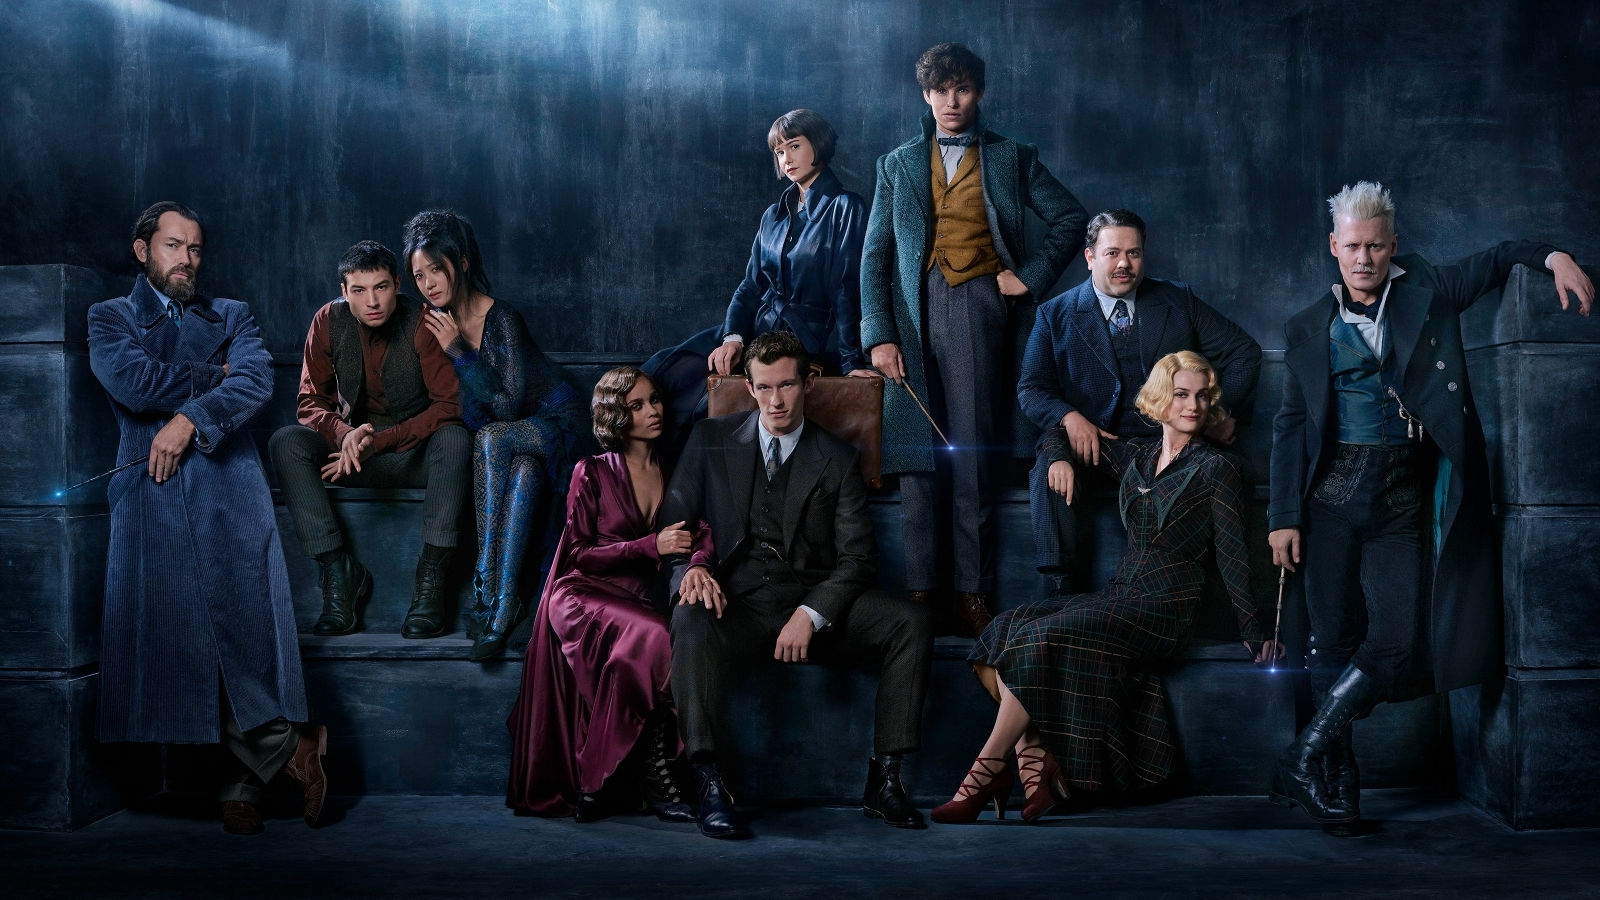 'Fantastic Beasts' Sequel Spoilers: Dumbledore To Finally Battle Grindelwald?